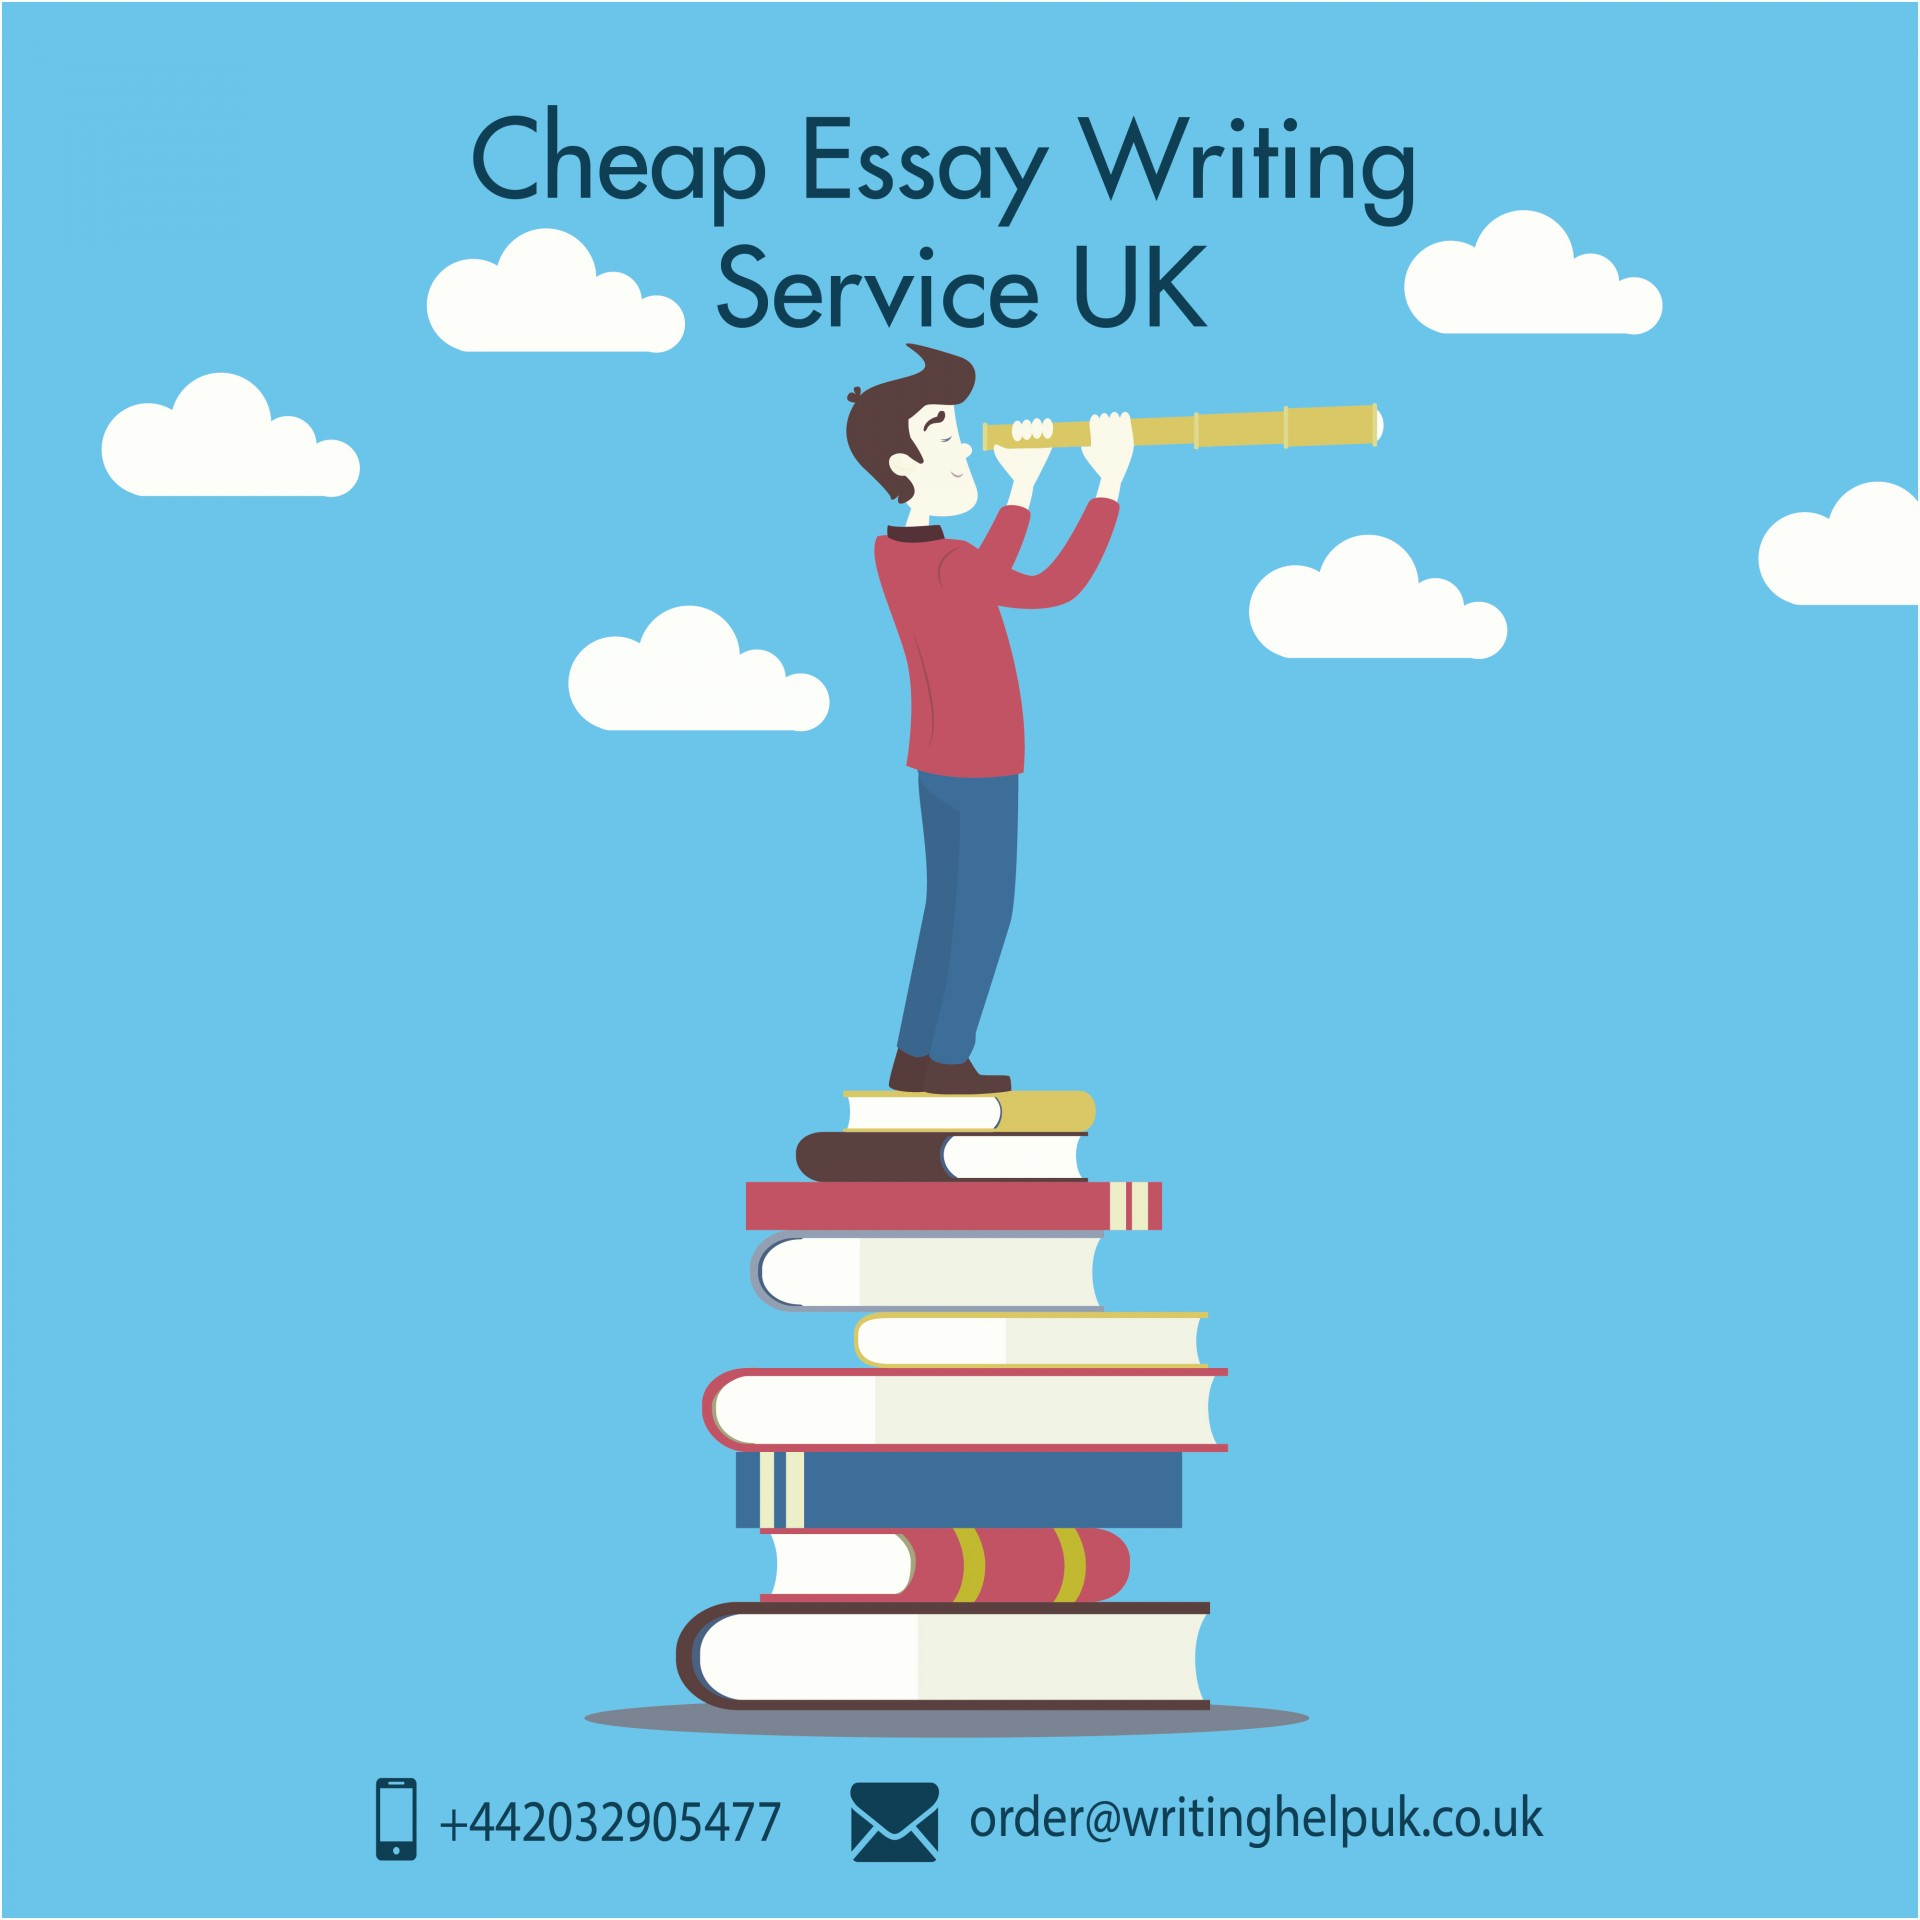 001 Essay Example Cheap Writing Service Uk Incredible Reviews Law 1920